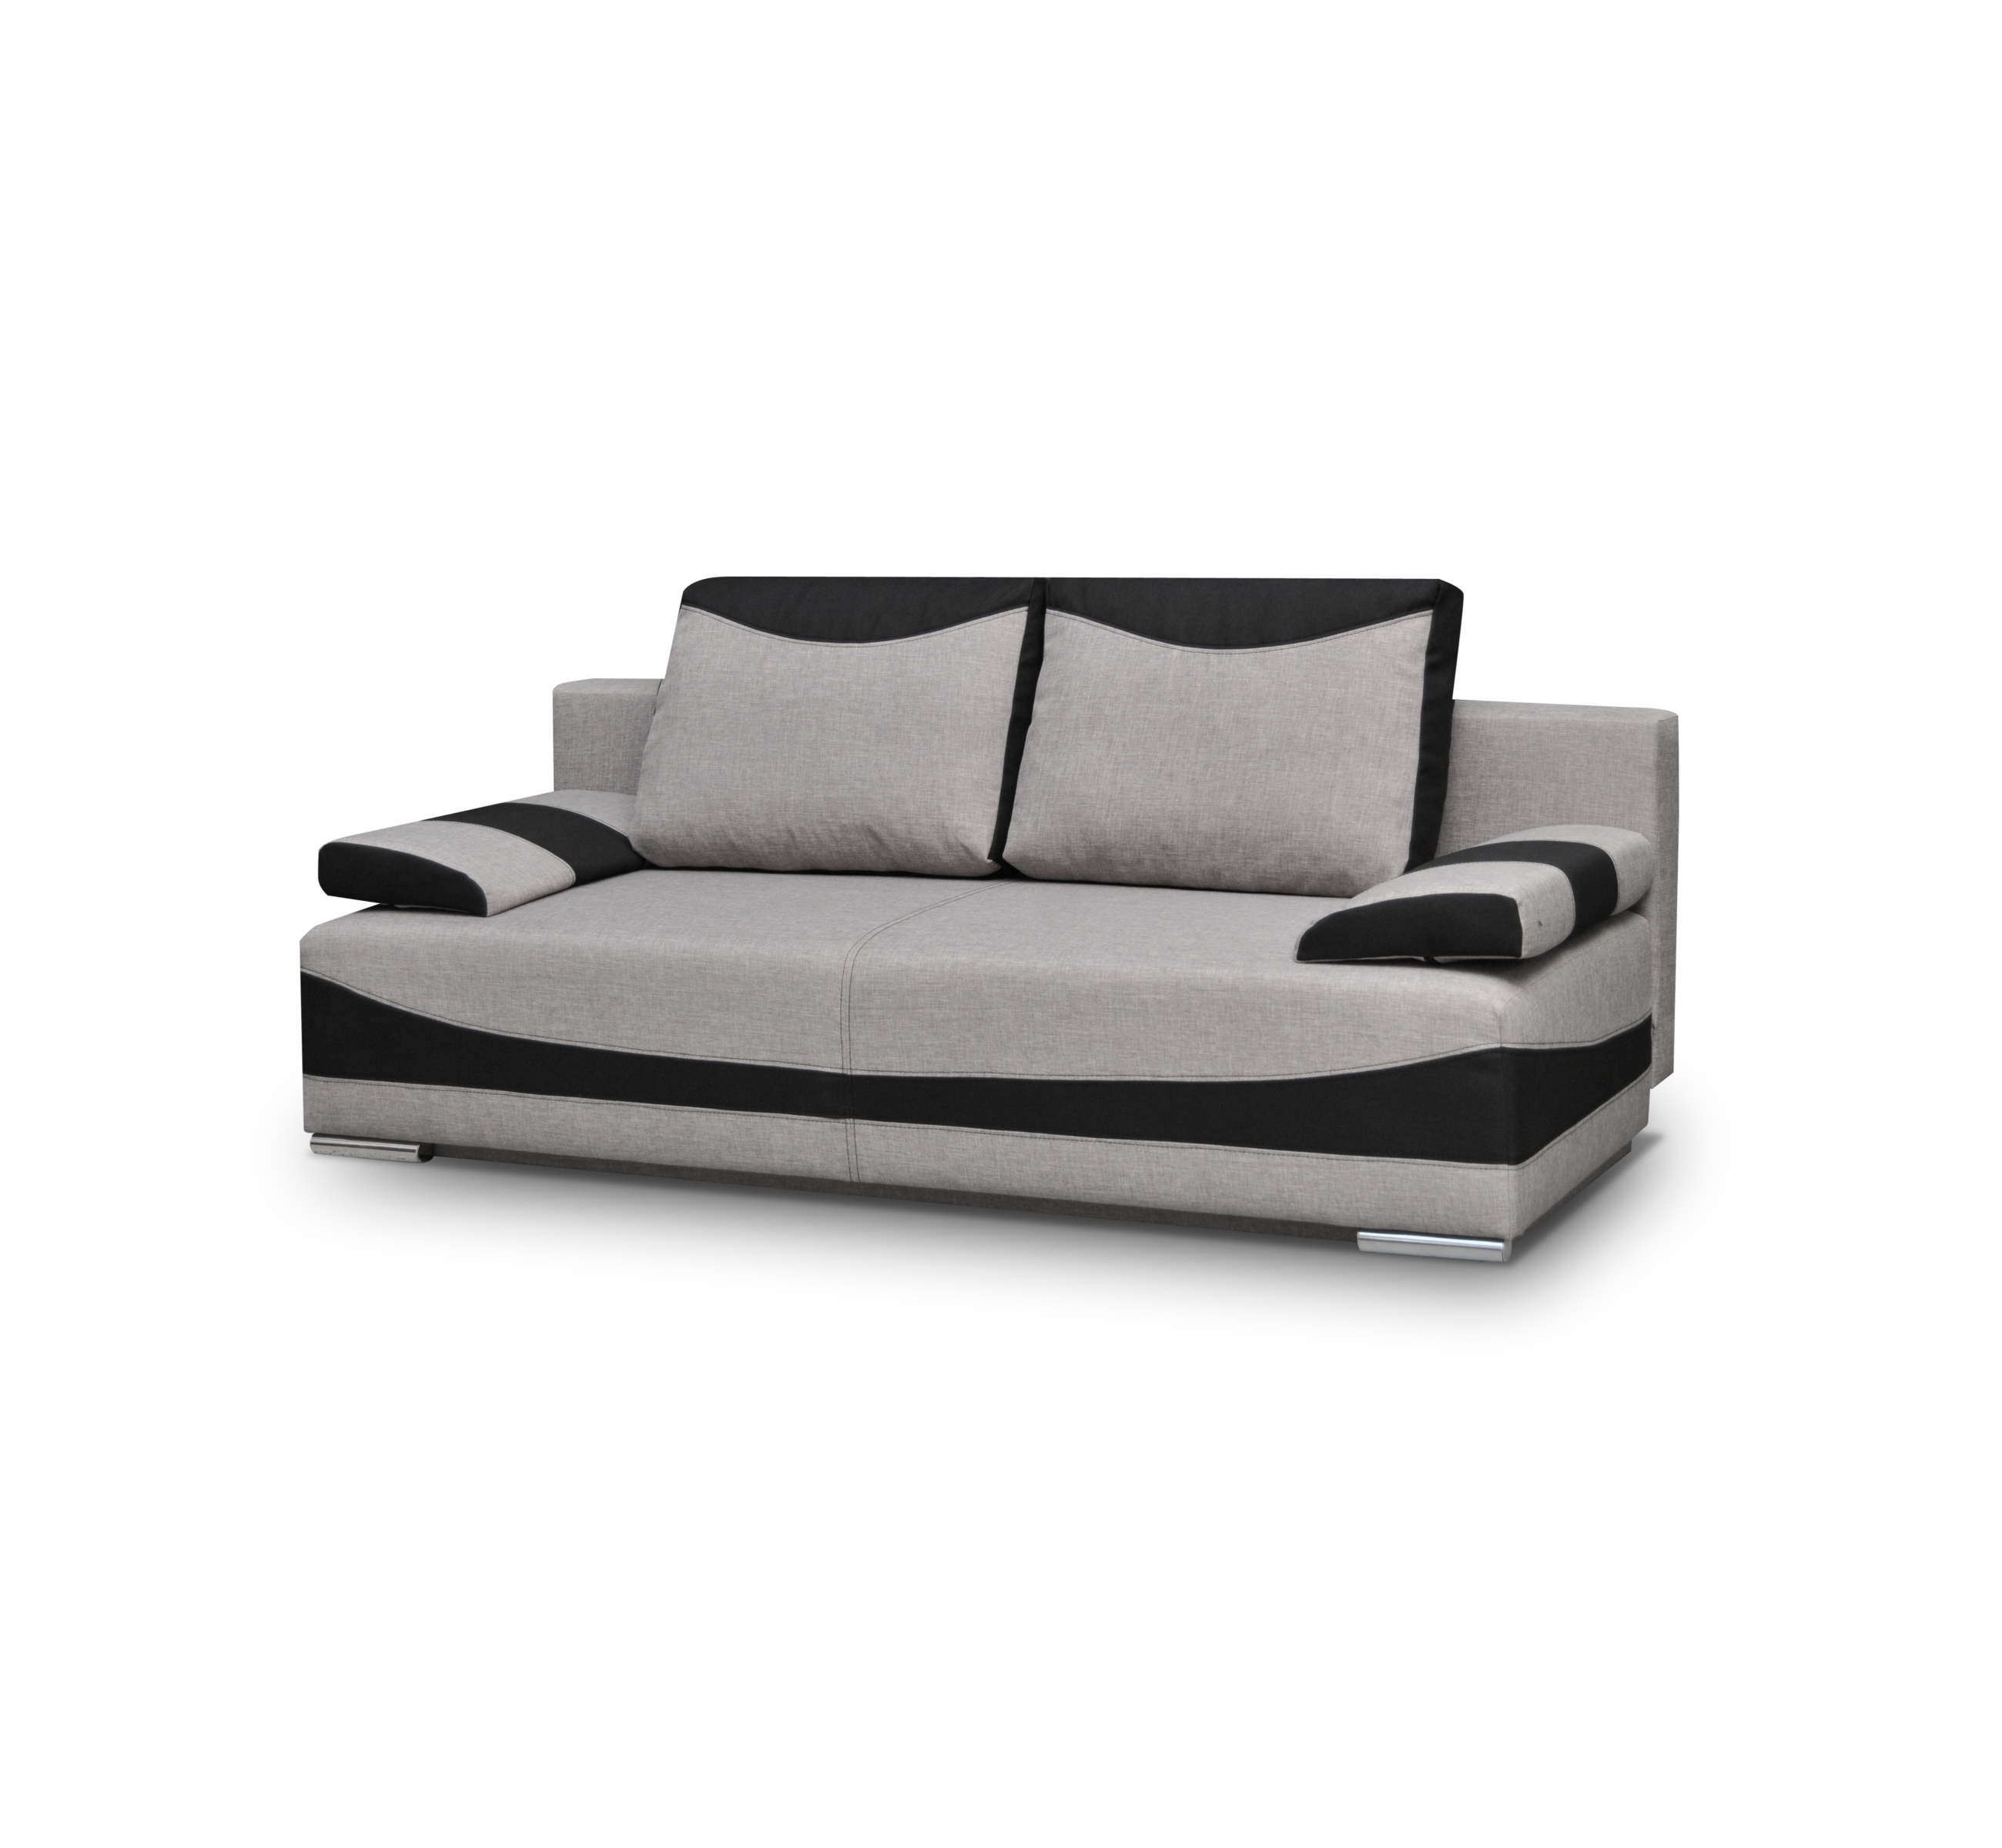 couch mit schlaffunktion sofa mit bettkasten bettsofa grau schwarz xxl pablo ebay. Black Bedroom Furniture Sets. Home Design Ideas